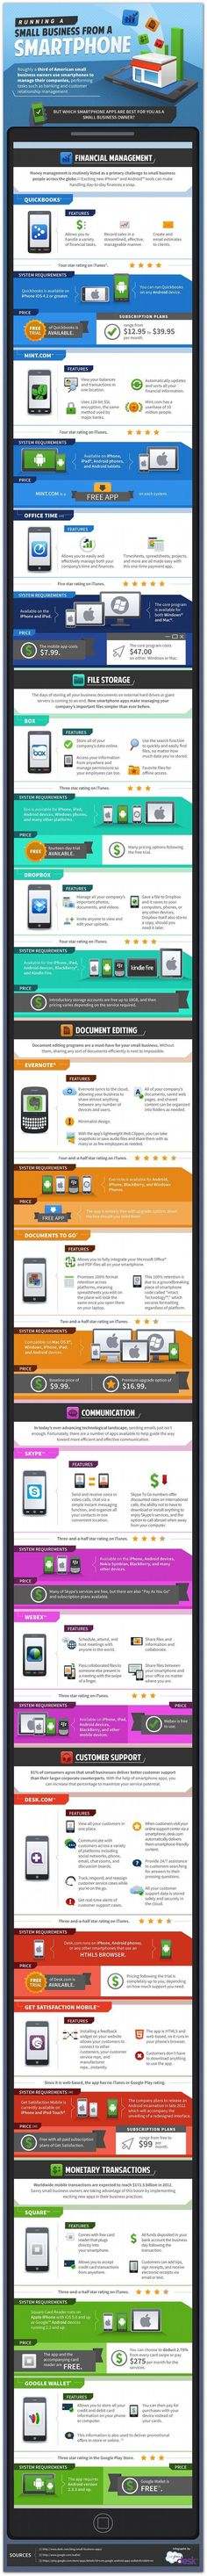 Running a business from a smartphone #infographic #technology via Entrepreneur Magazine